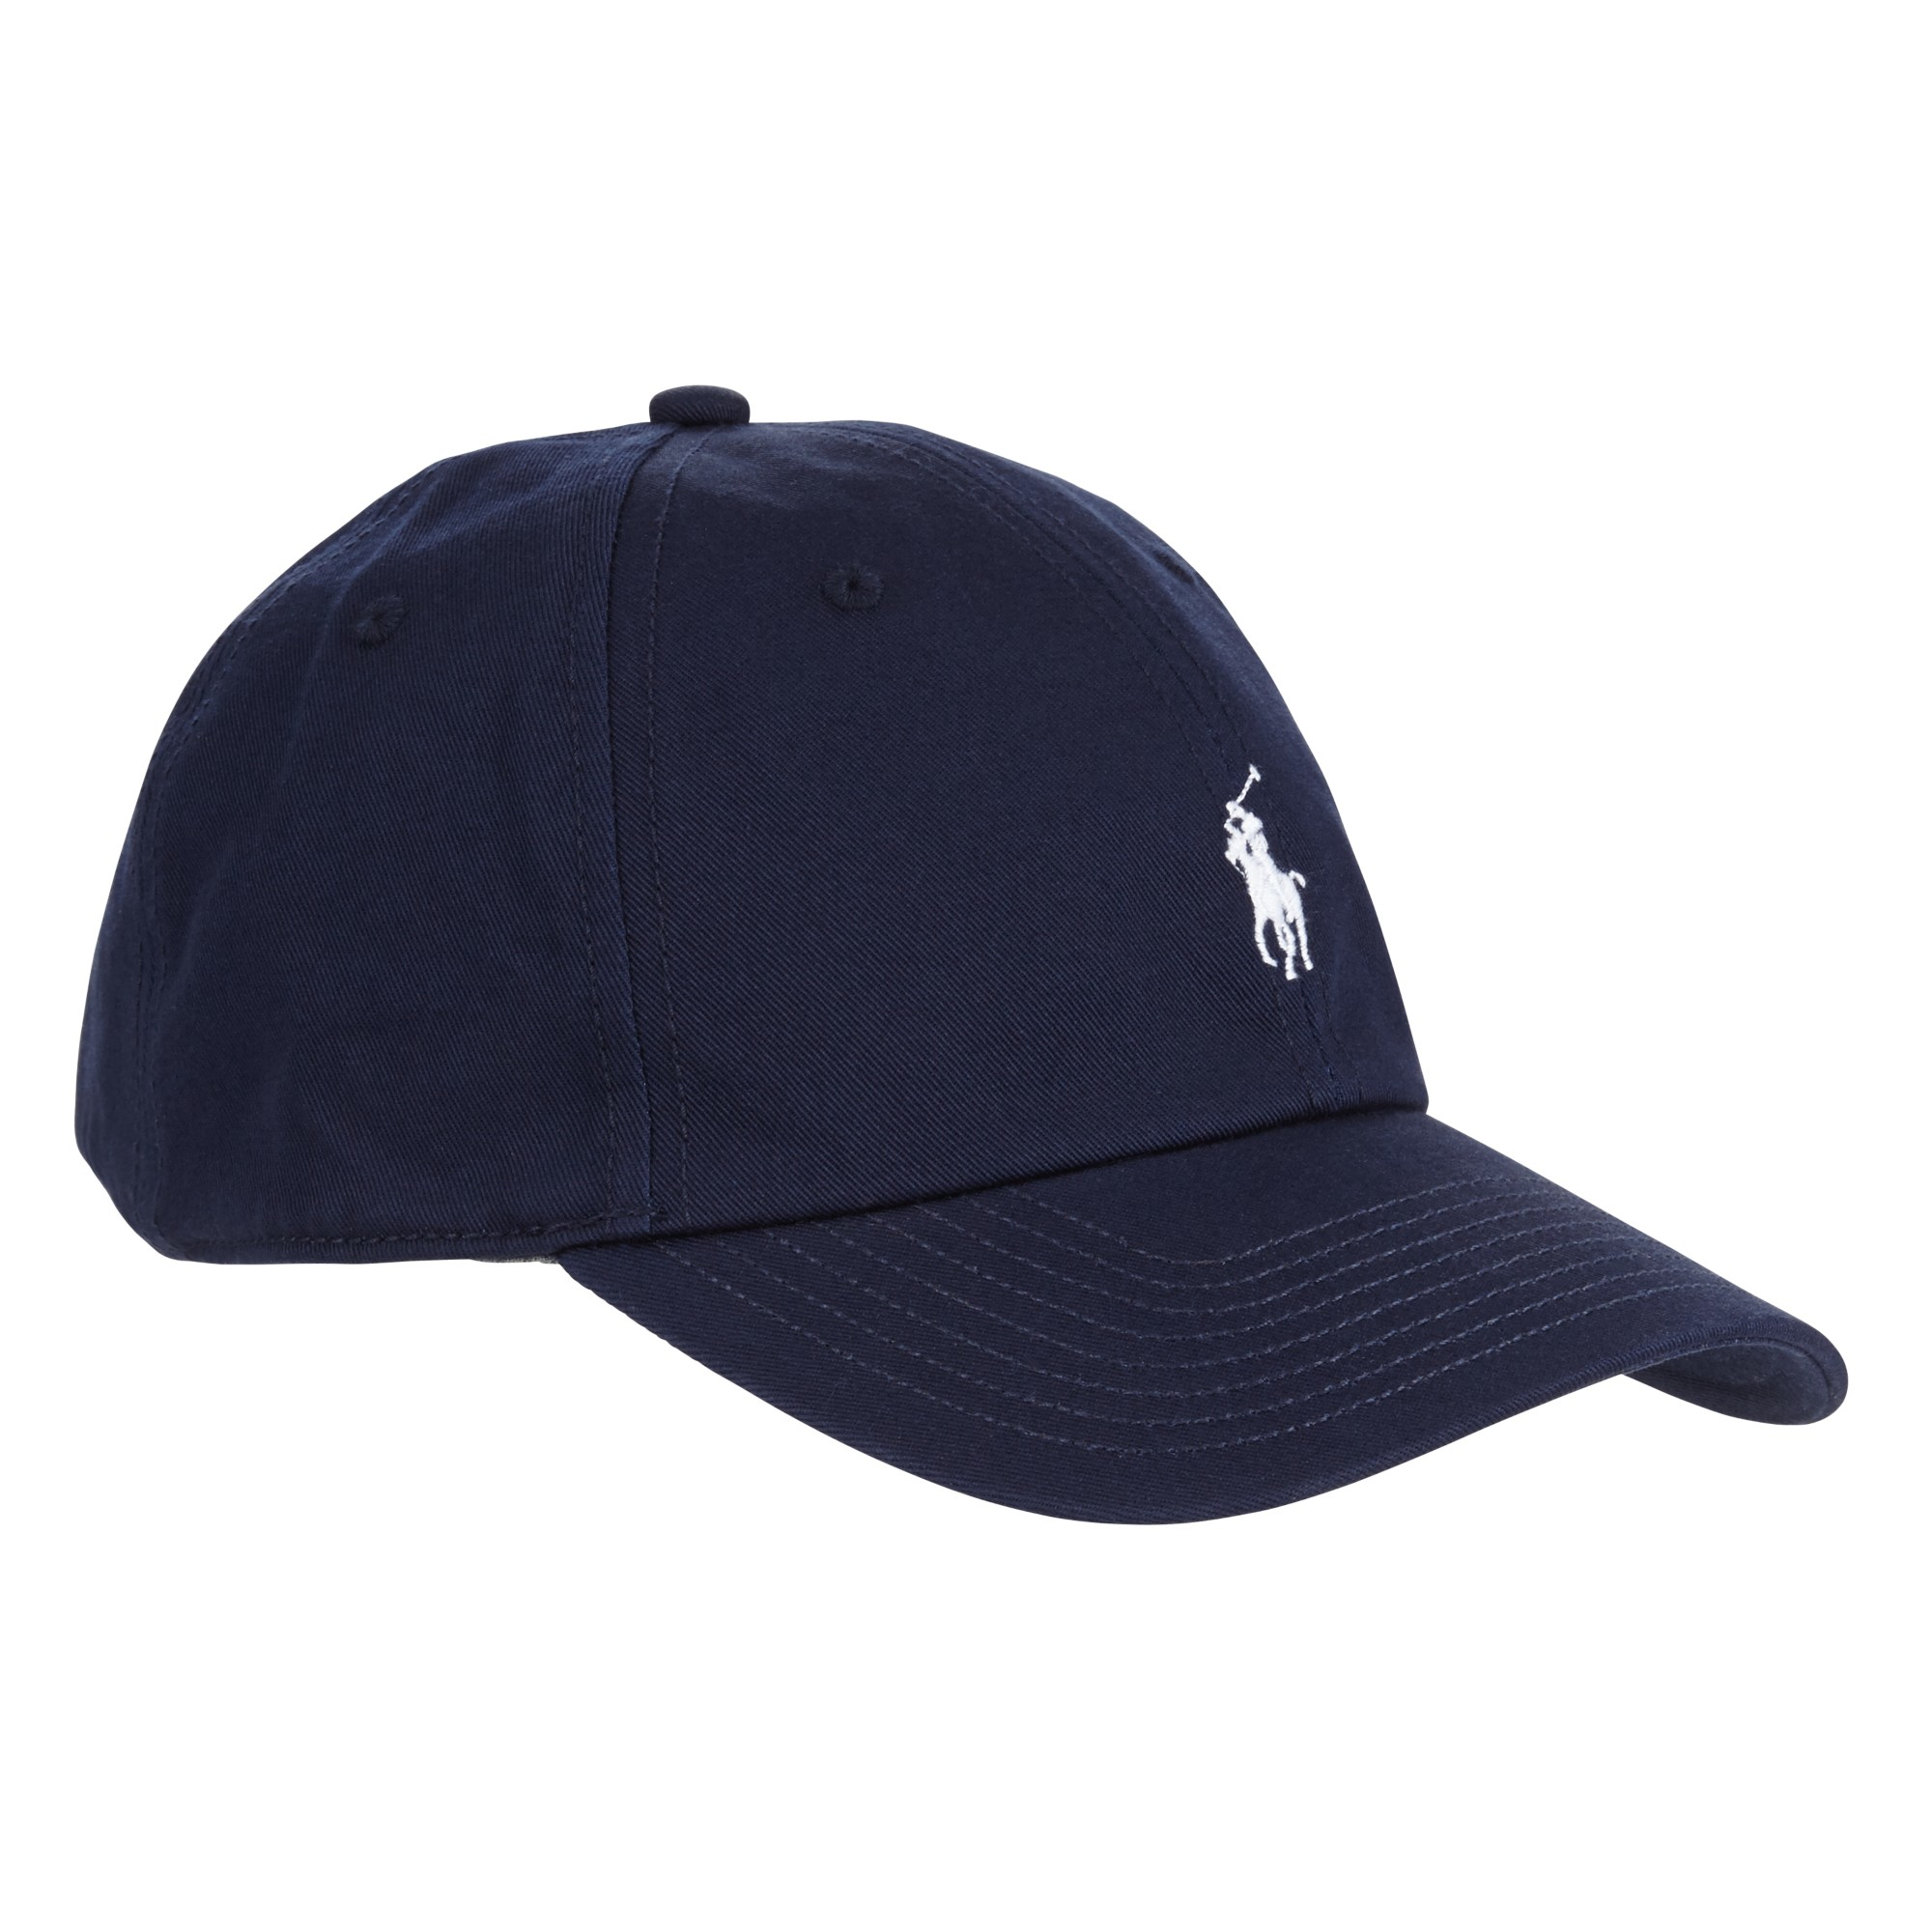 Pink Pony Polo Golf By Fairway Baseball Cap in Blue for Men - Lyst 93e9c514c78